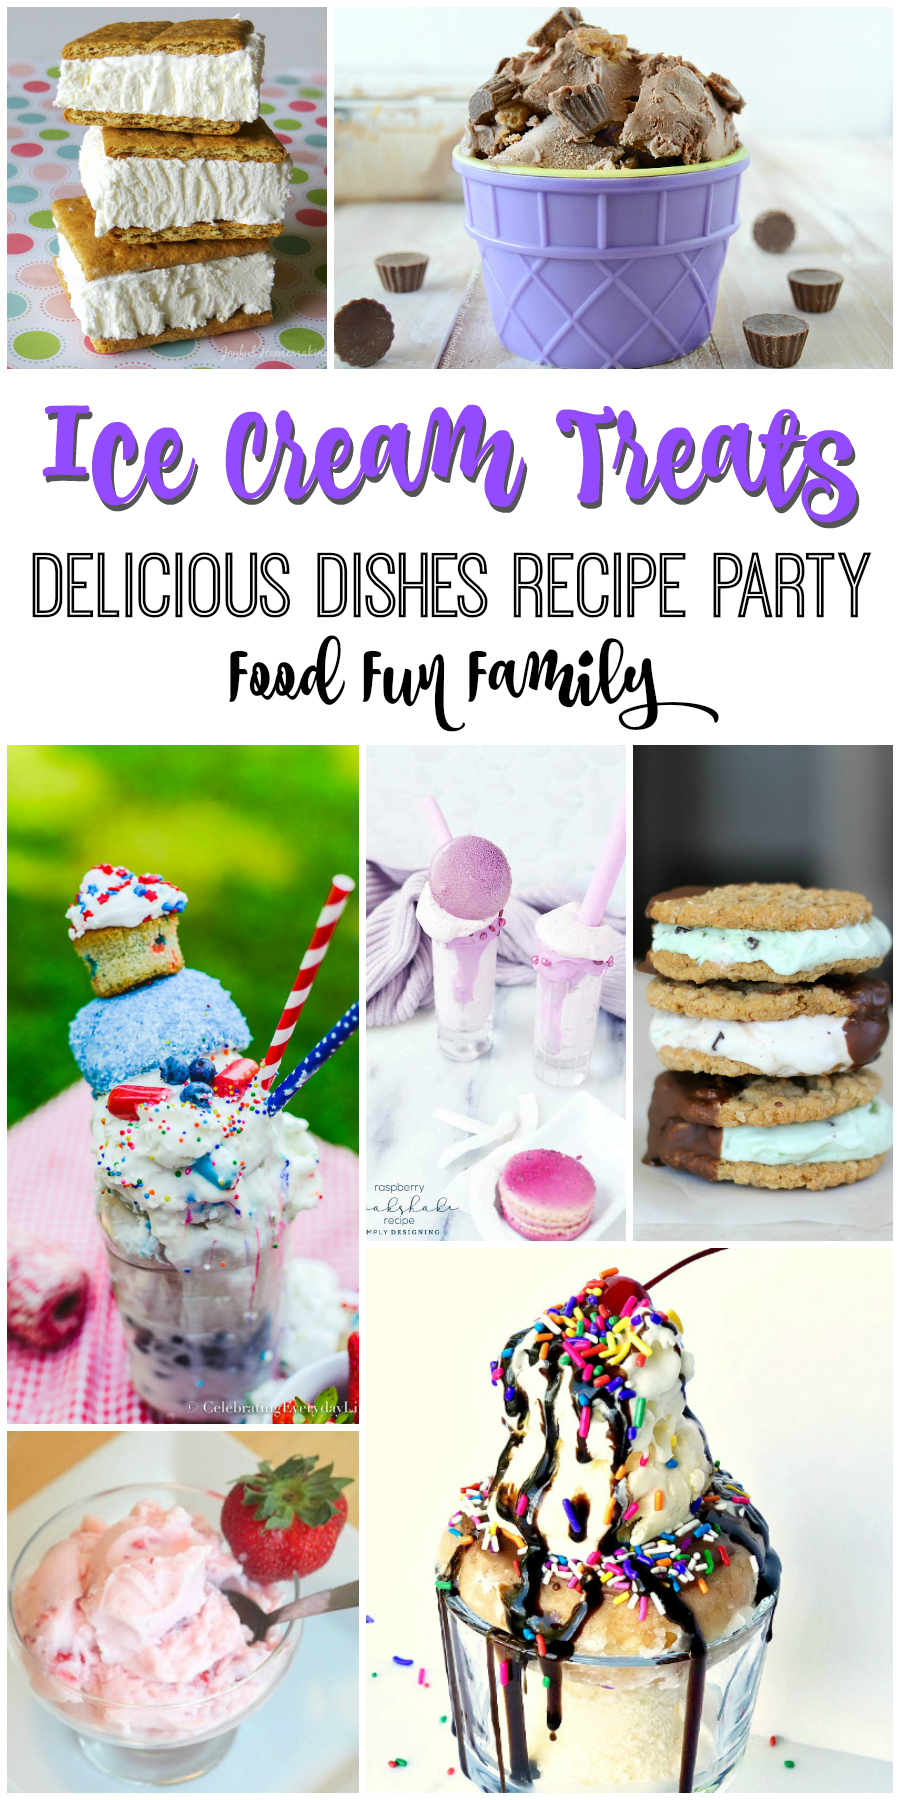 Ice Cream Treats - a Delicious Dishes Recipe Party by Food Fun Family